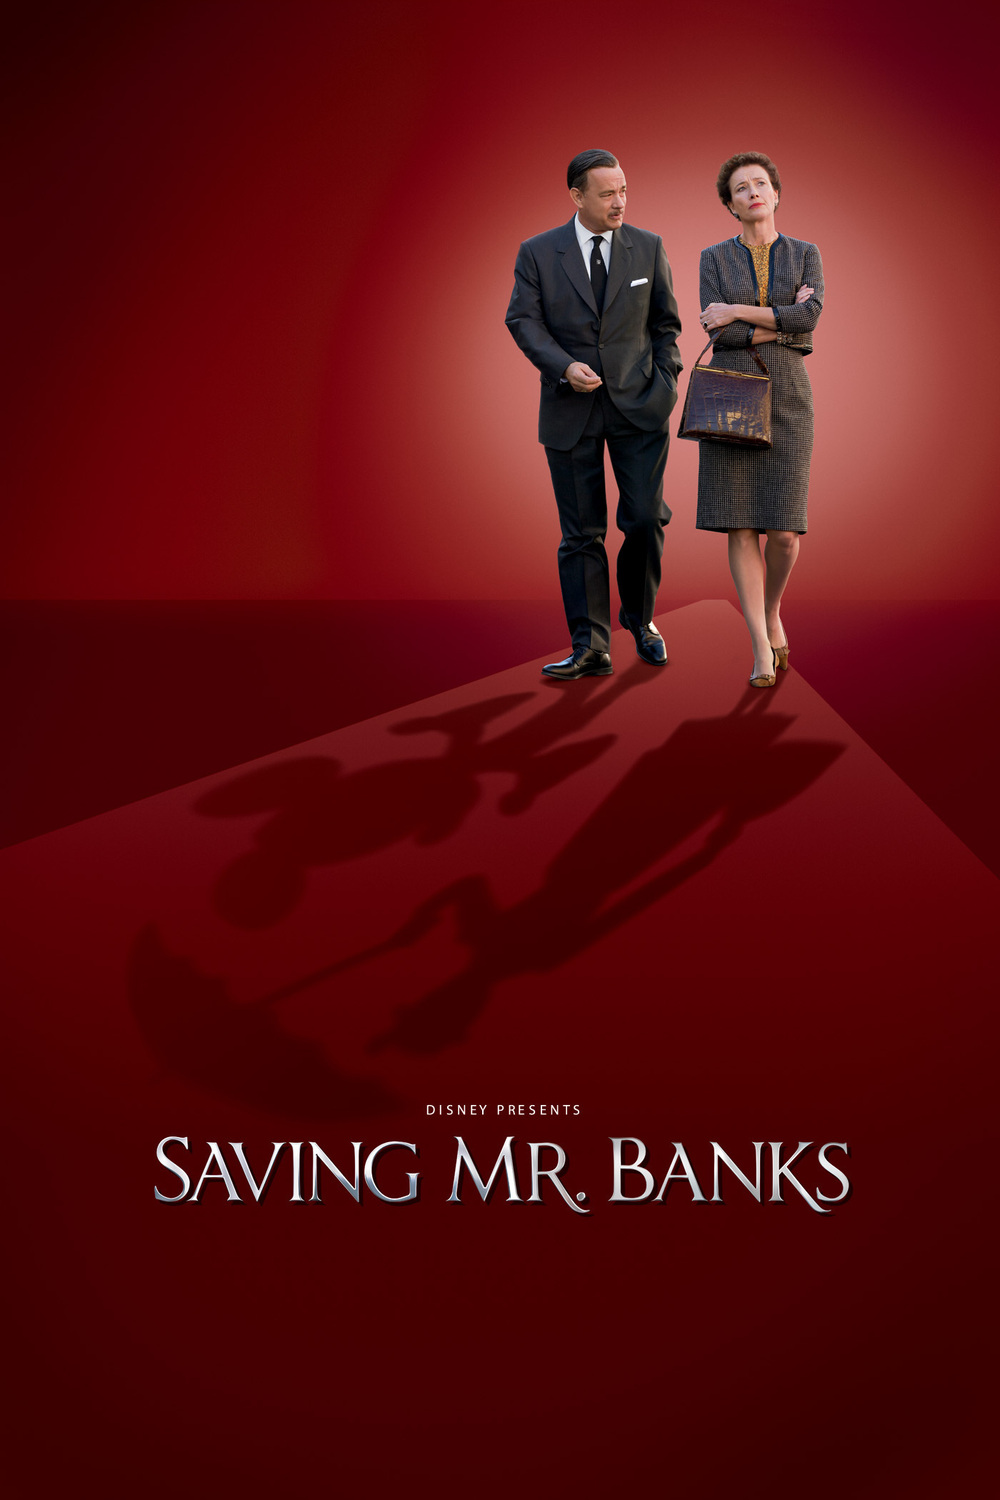 Saving Mr. Banks DVD Release Date | Redbox, Netflix ...